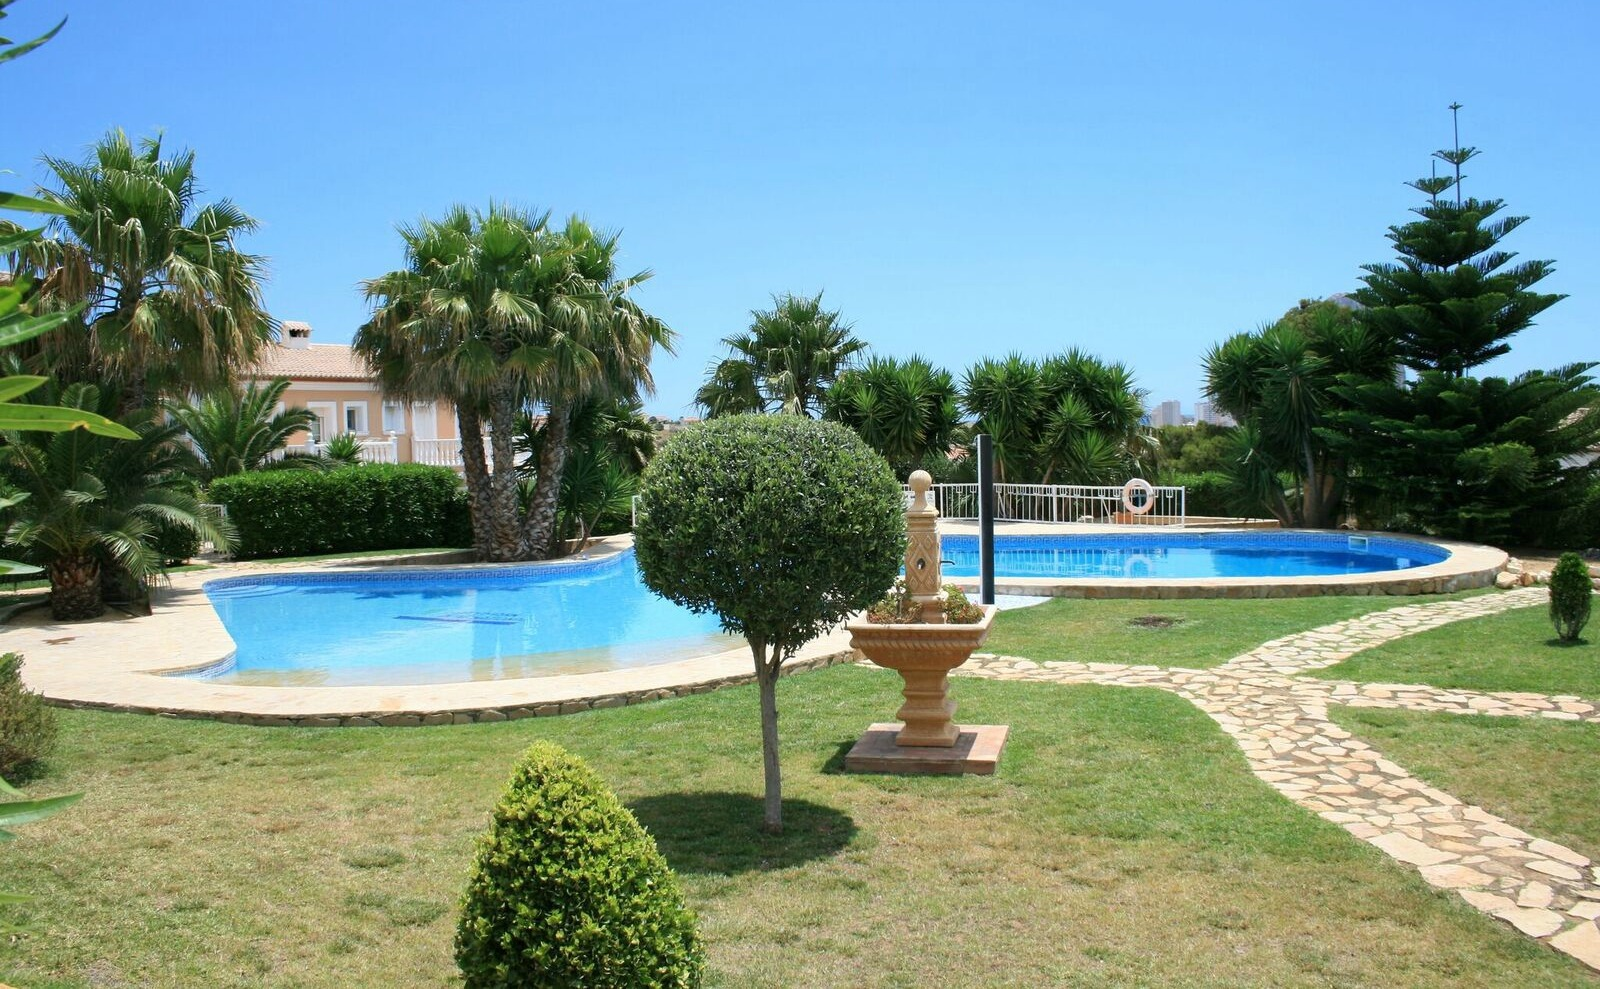 Click on the image to view this townhouse on the Costa Blanca.